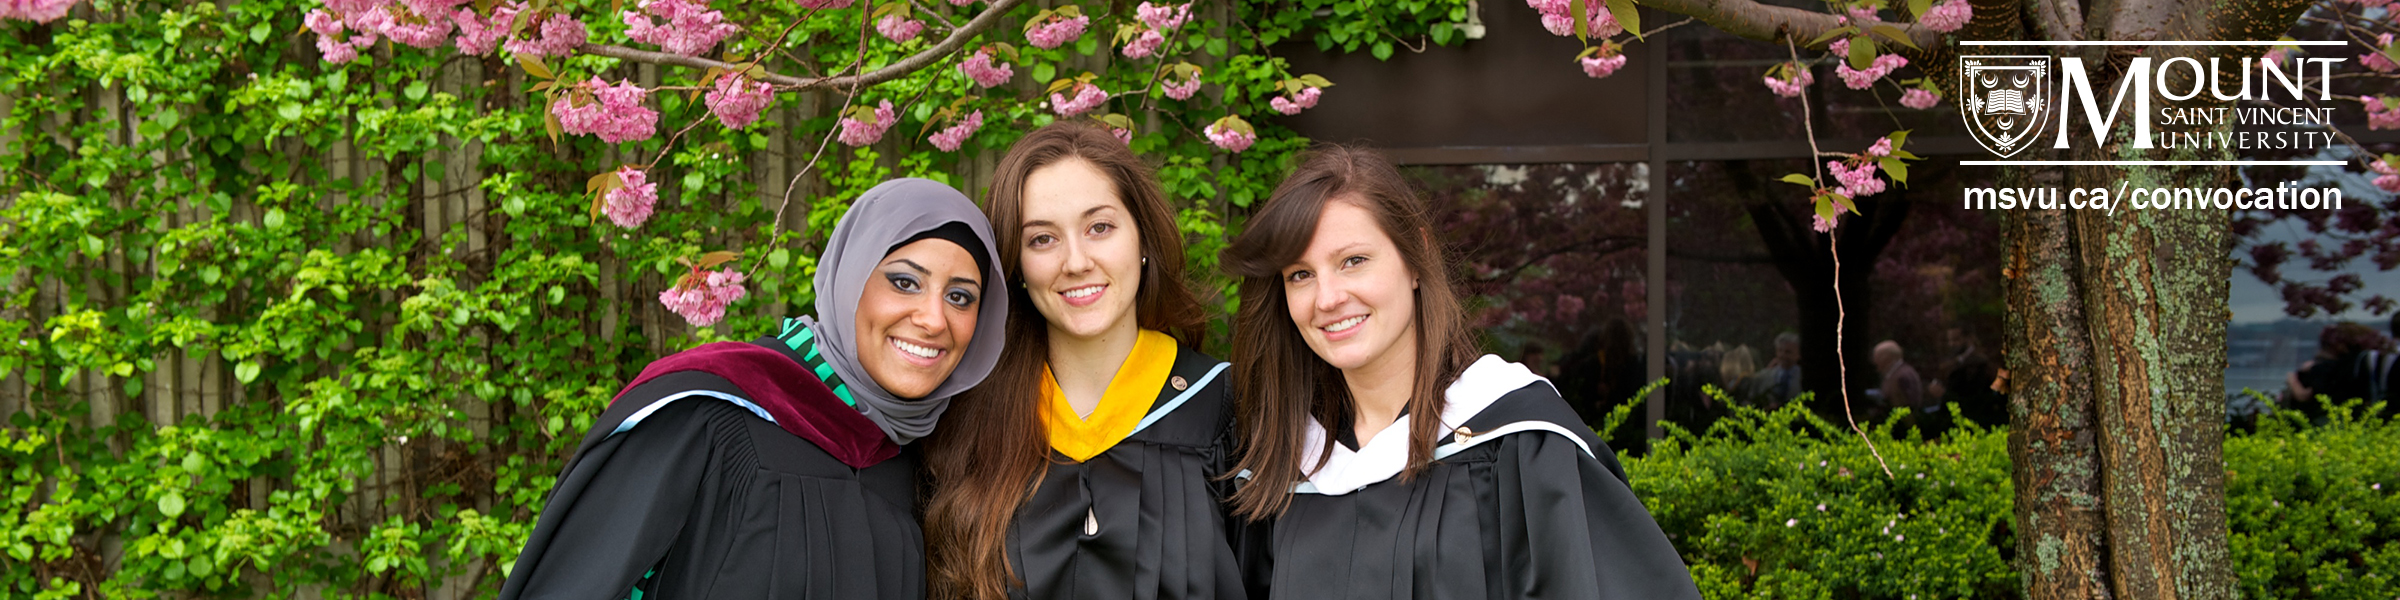 Spring Convocation Email Header